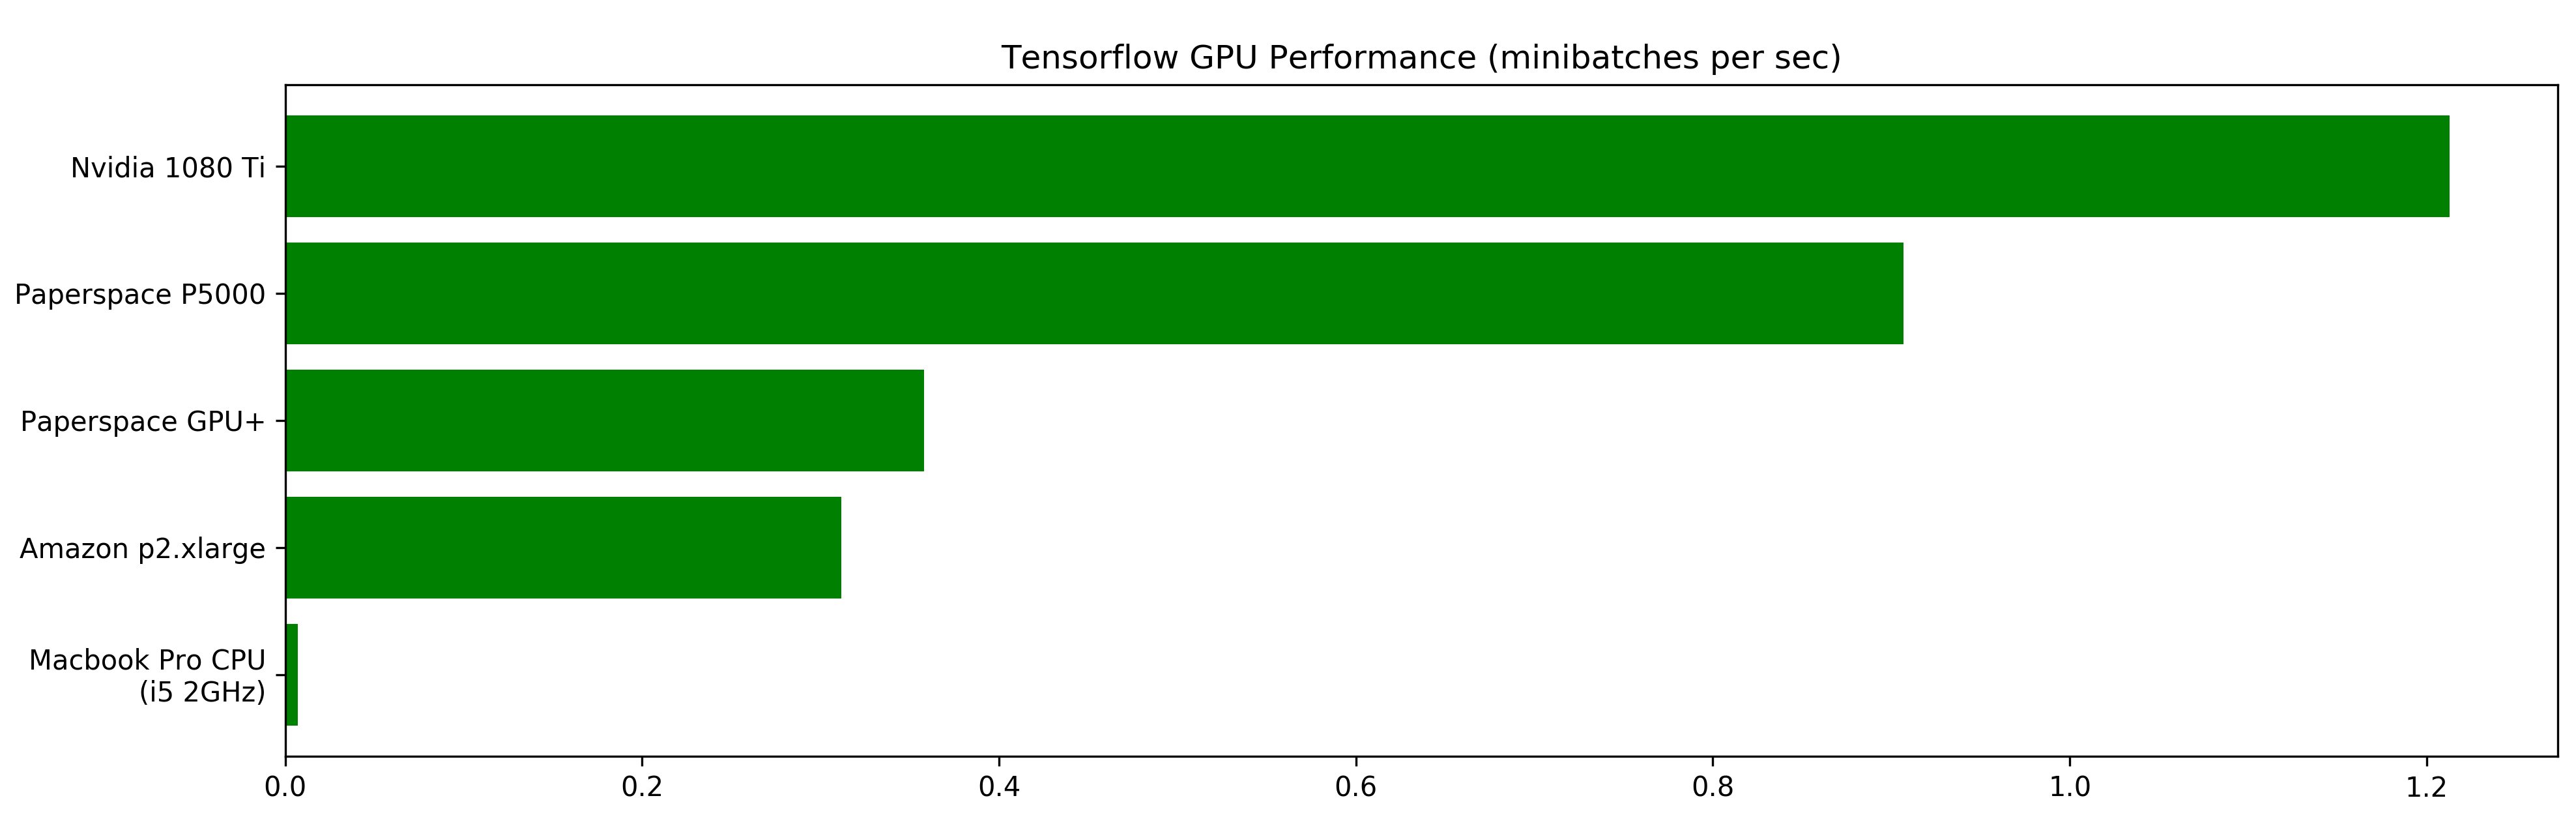 Benchmarking Tensorflow Performance and Cost Across